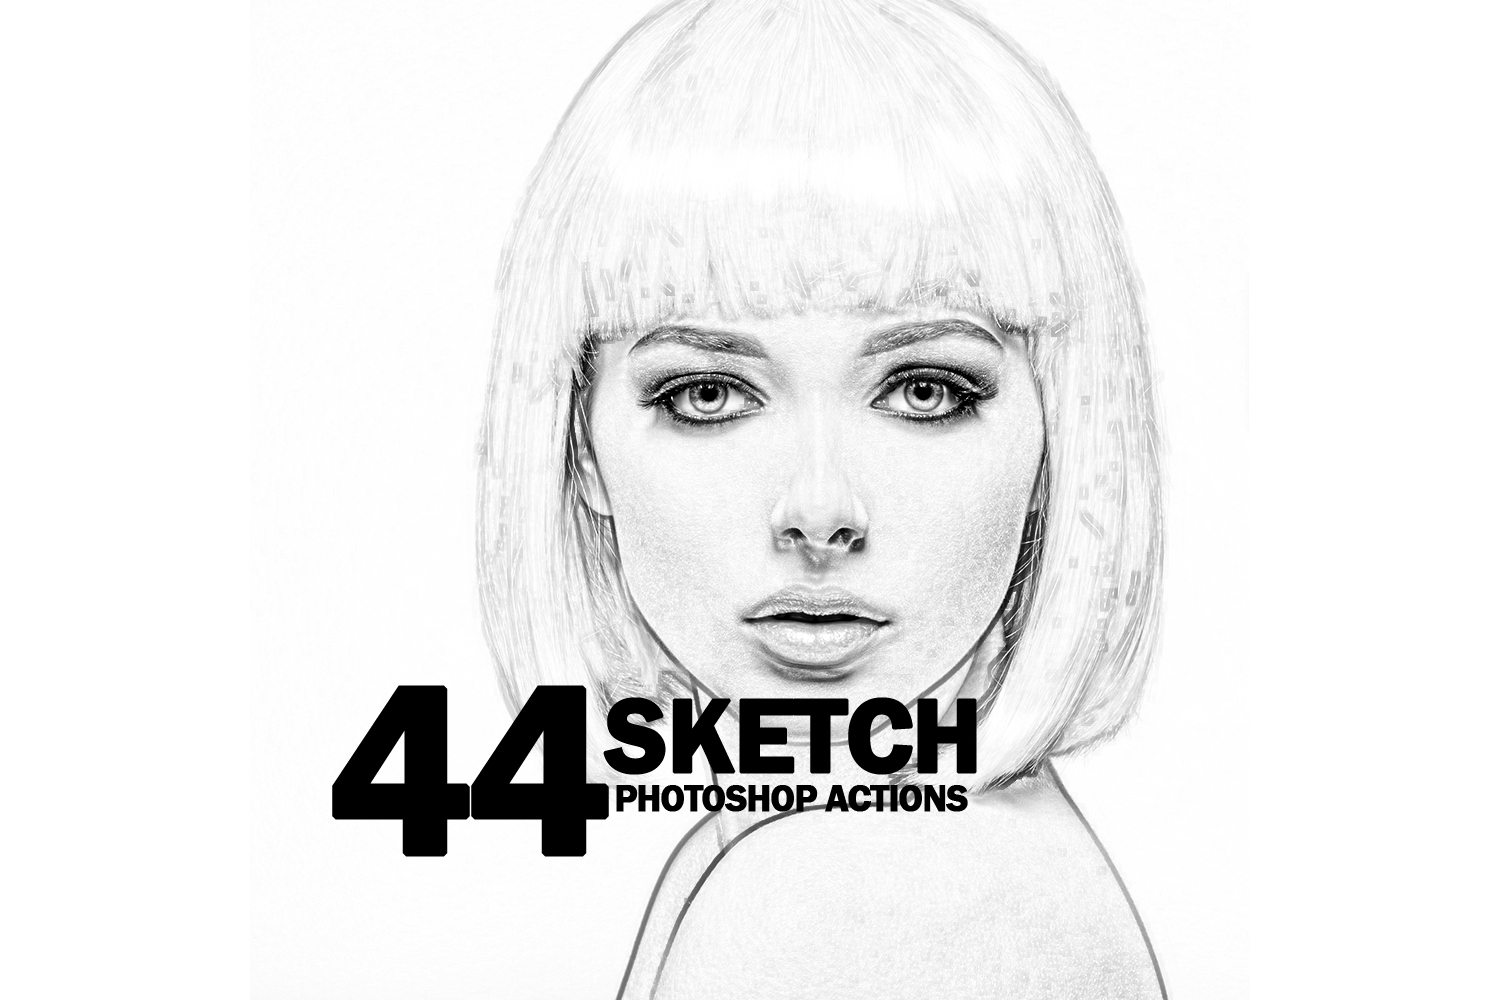 44 Sketch Photoshop Actions Collection (Action for photoshop CS5,CS6,CC) example image 1